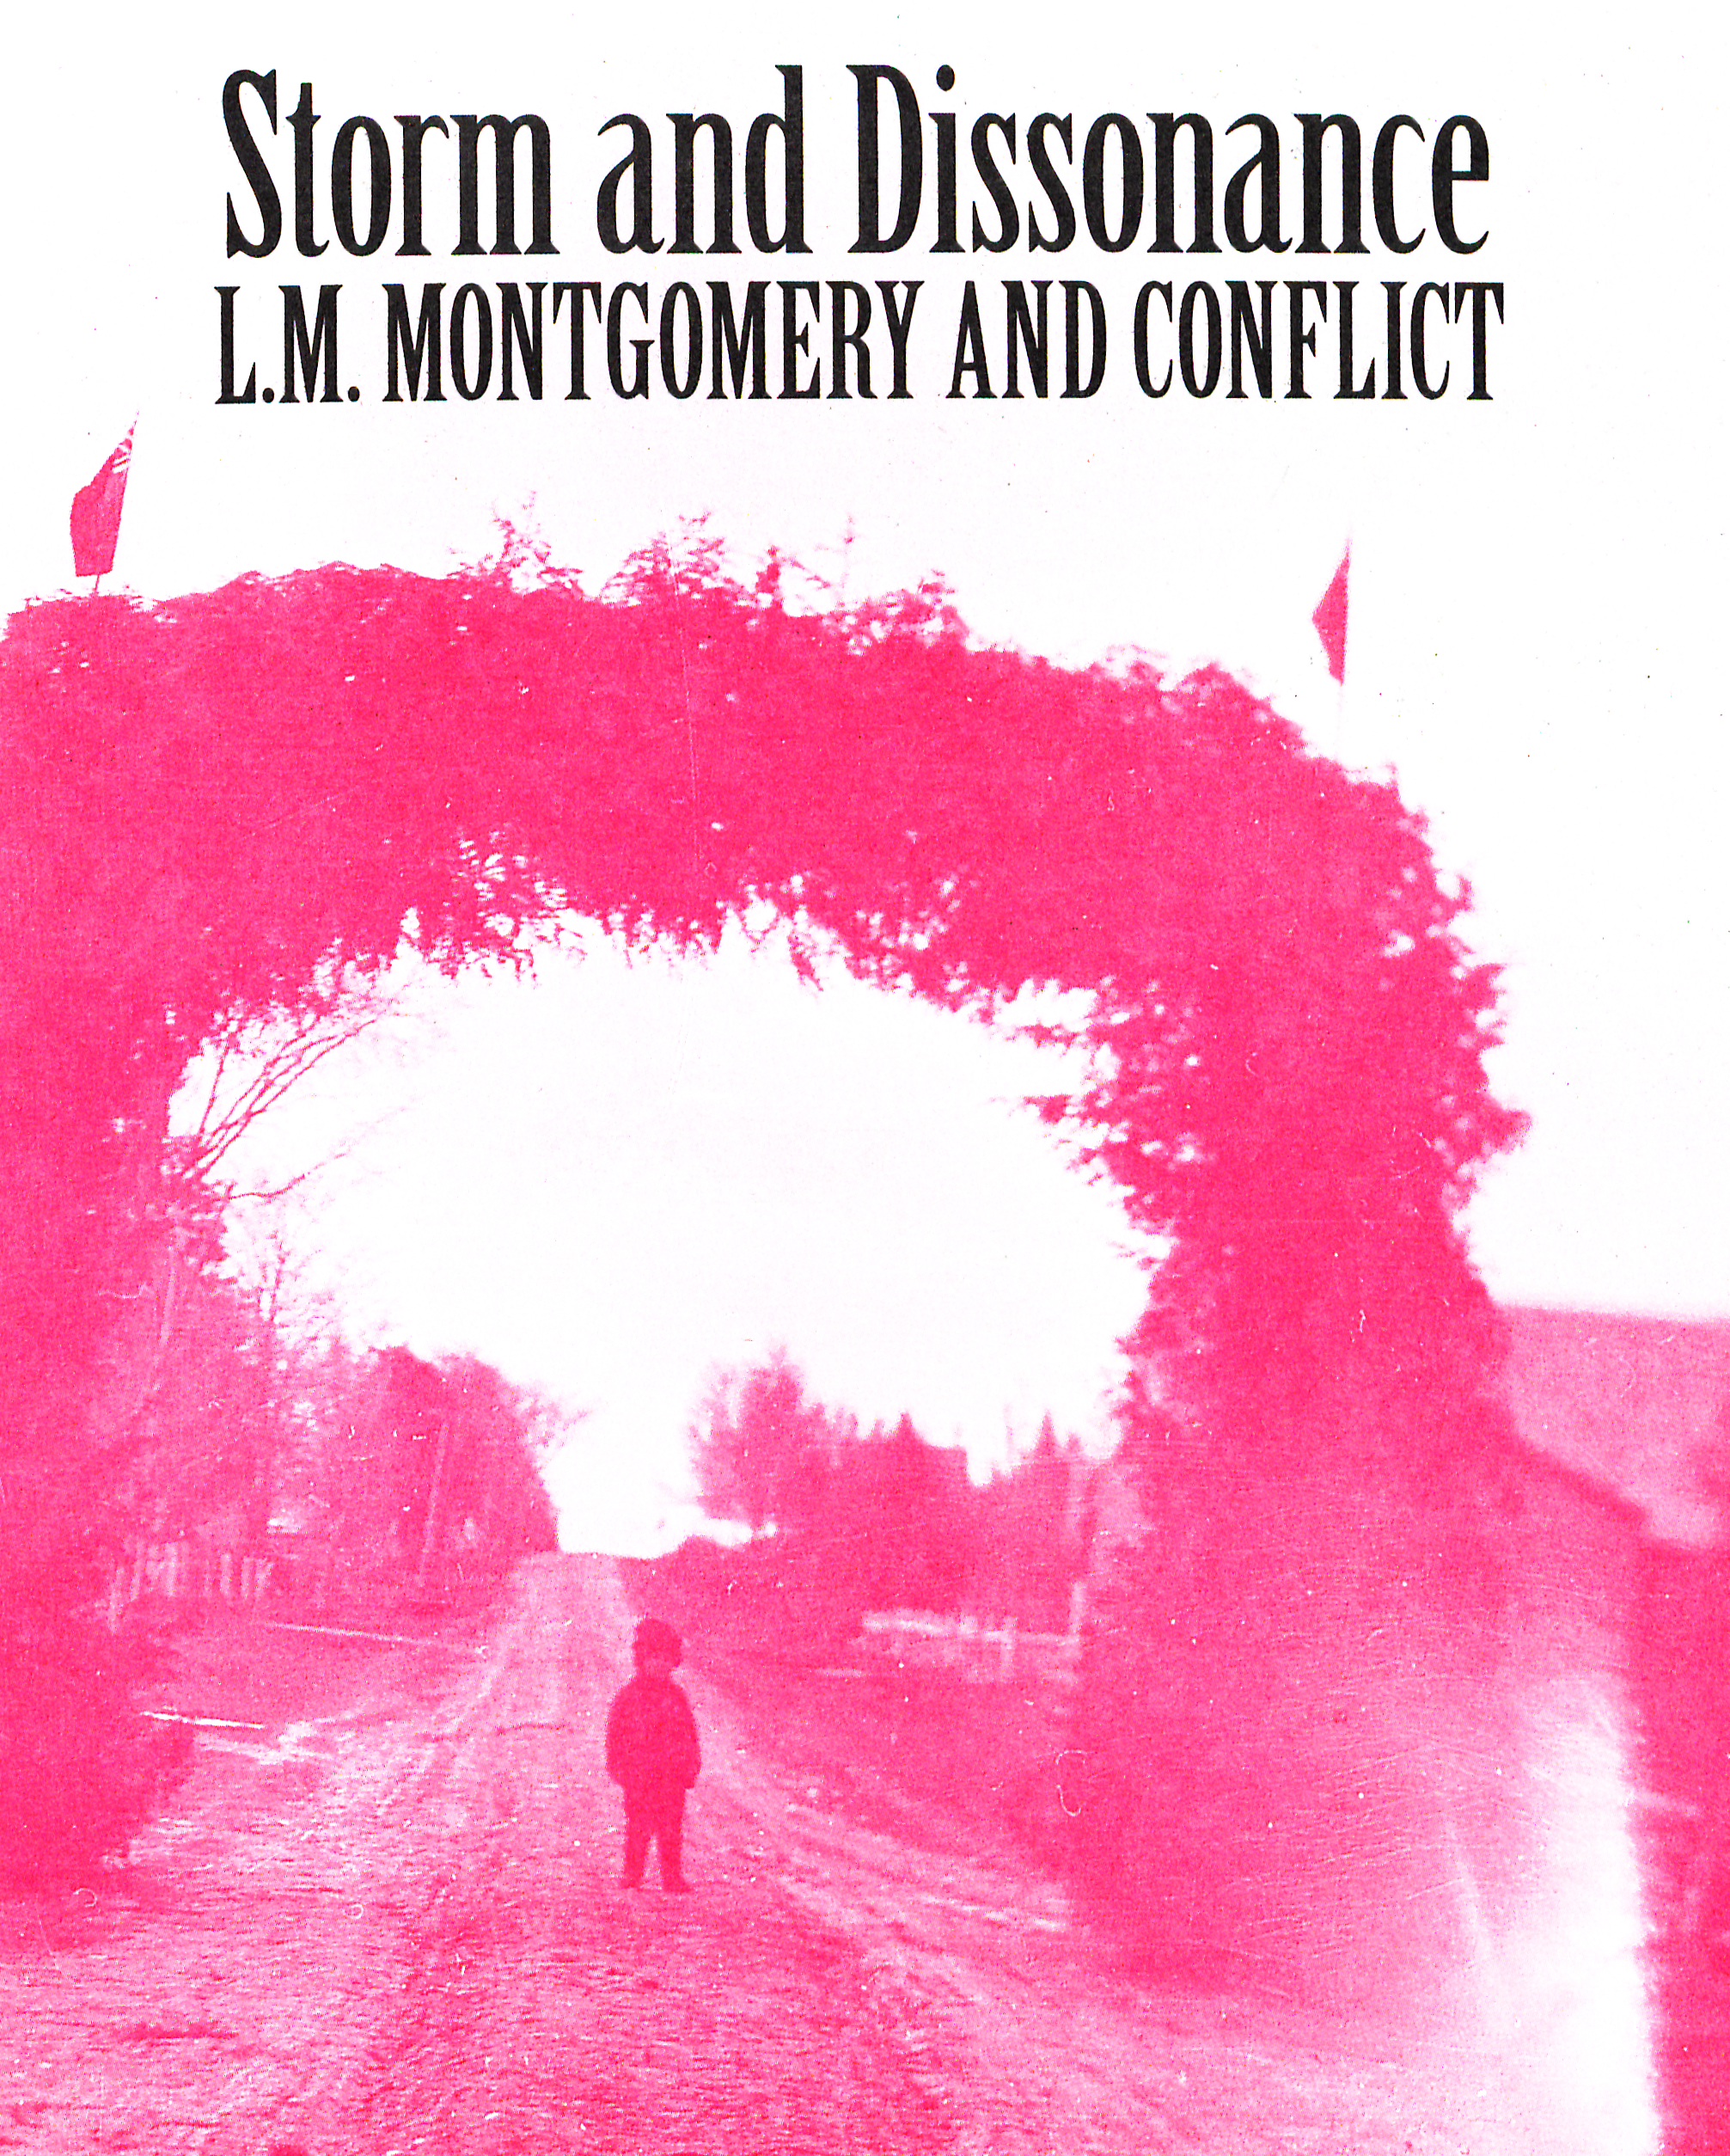 Storm and Dissonance: L.M. Montgomery and Conflict June 21-25, 2006 at the University of Prince Edward Island, Canada